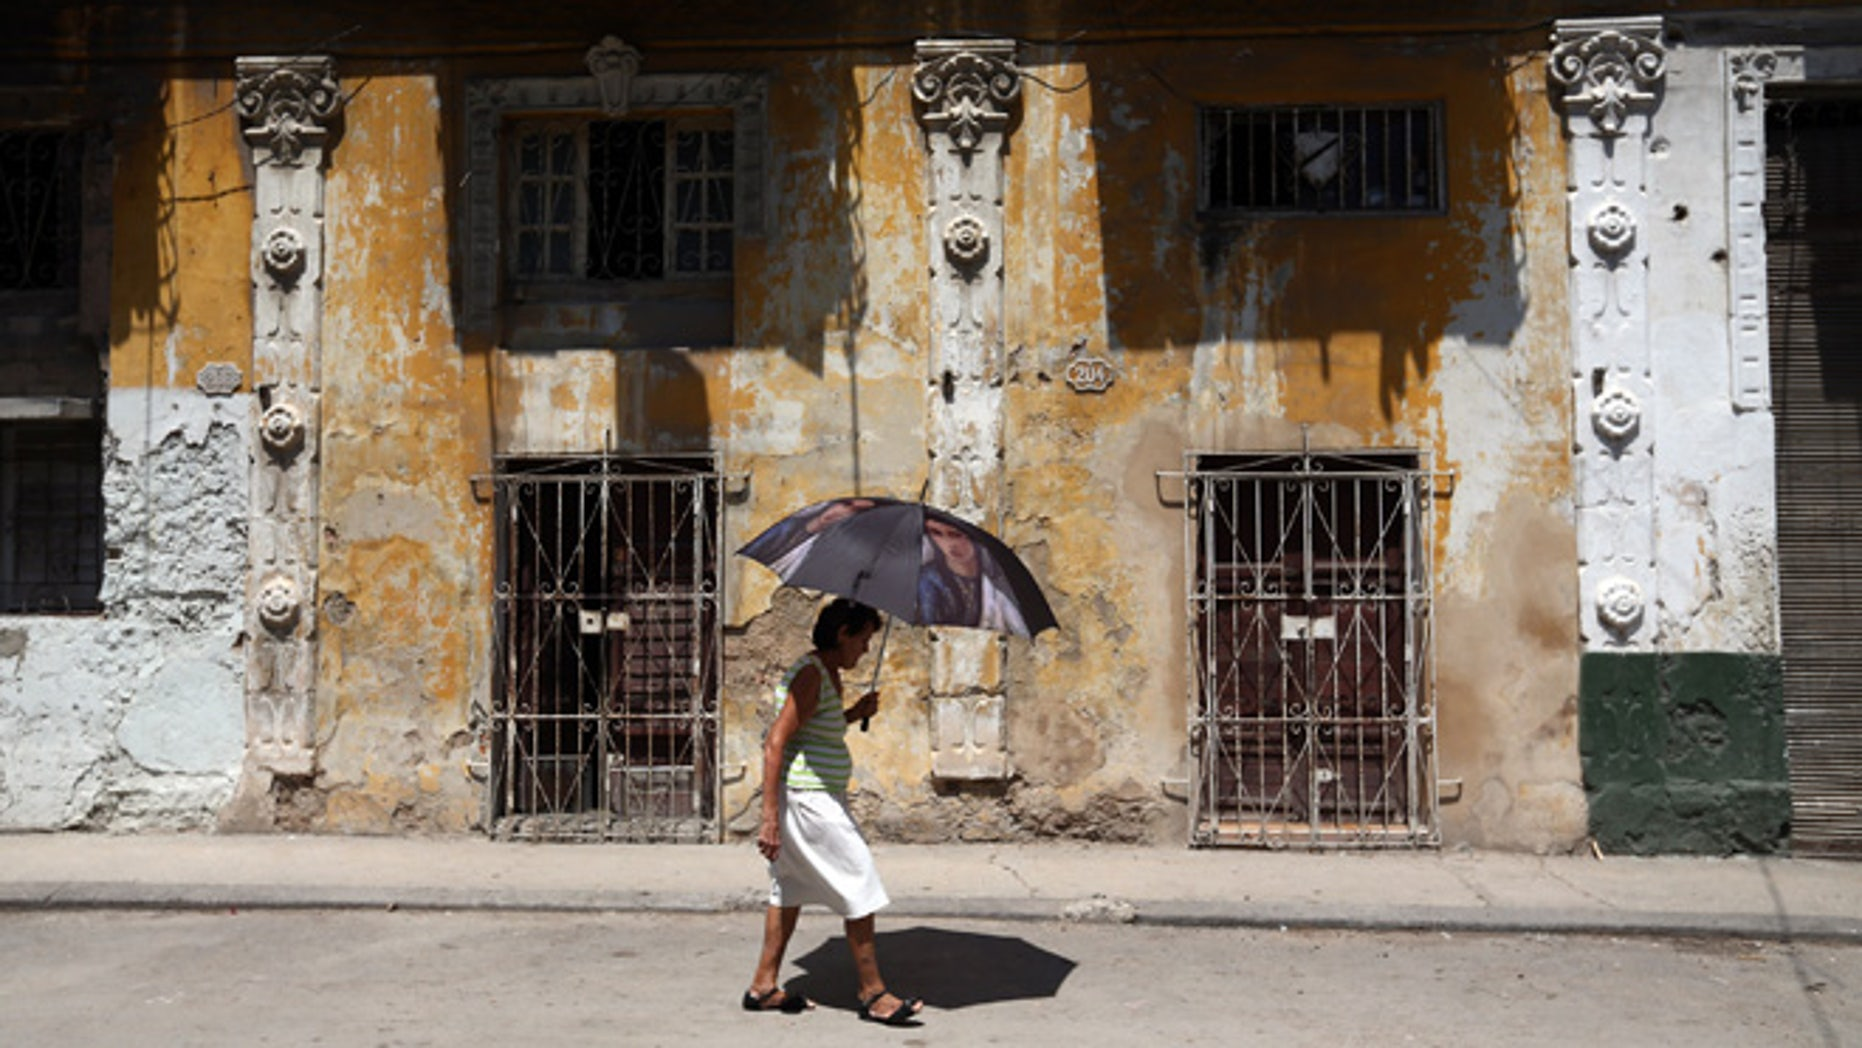 HAVANA, CUBA - SEPTEMBER 18: A woman shelters from the heat under an umbrella as she walks along a street on September 18, 2015 in Havana, Cuba. Pope Francis is due to make a three day visit to Cuba from September 19 where he will meet President Raul Castro and hold Mass in Revolution Square before travelling to Holguin, Santiago de Cuba, El Cobre and onwards to the United States. (Photo by Carl Court/Getty Images)